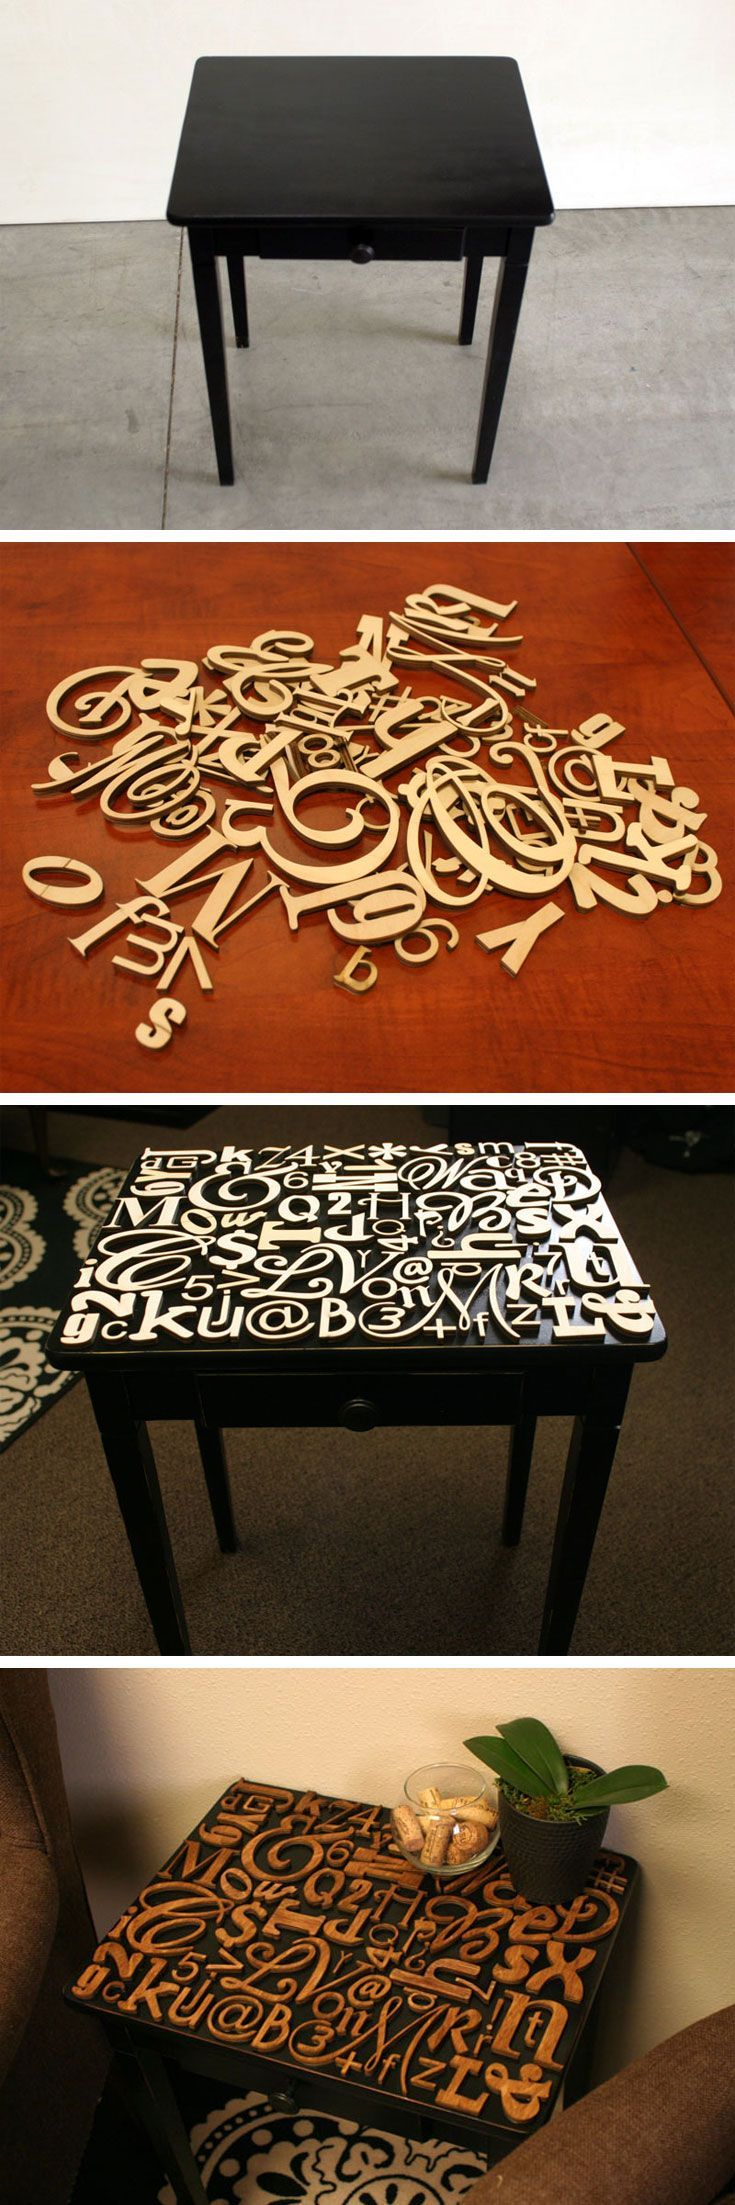 DIY - How to Make a Table Topped with Letters